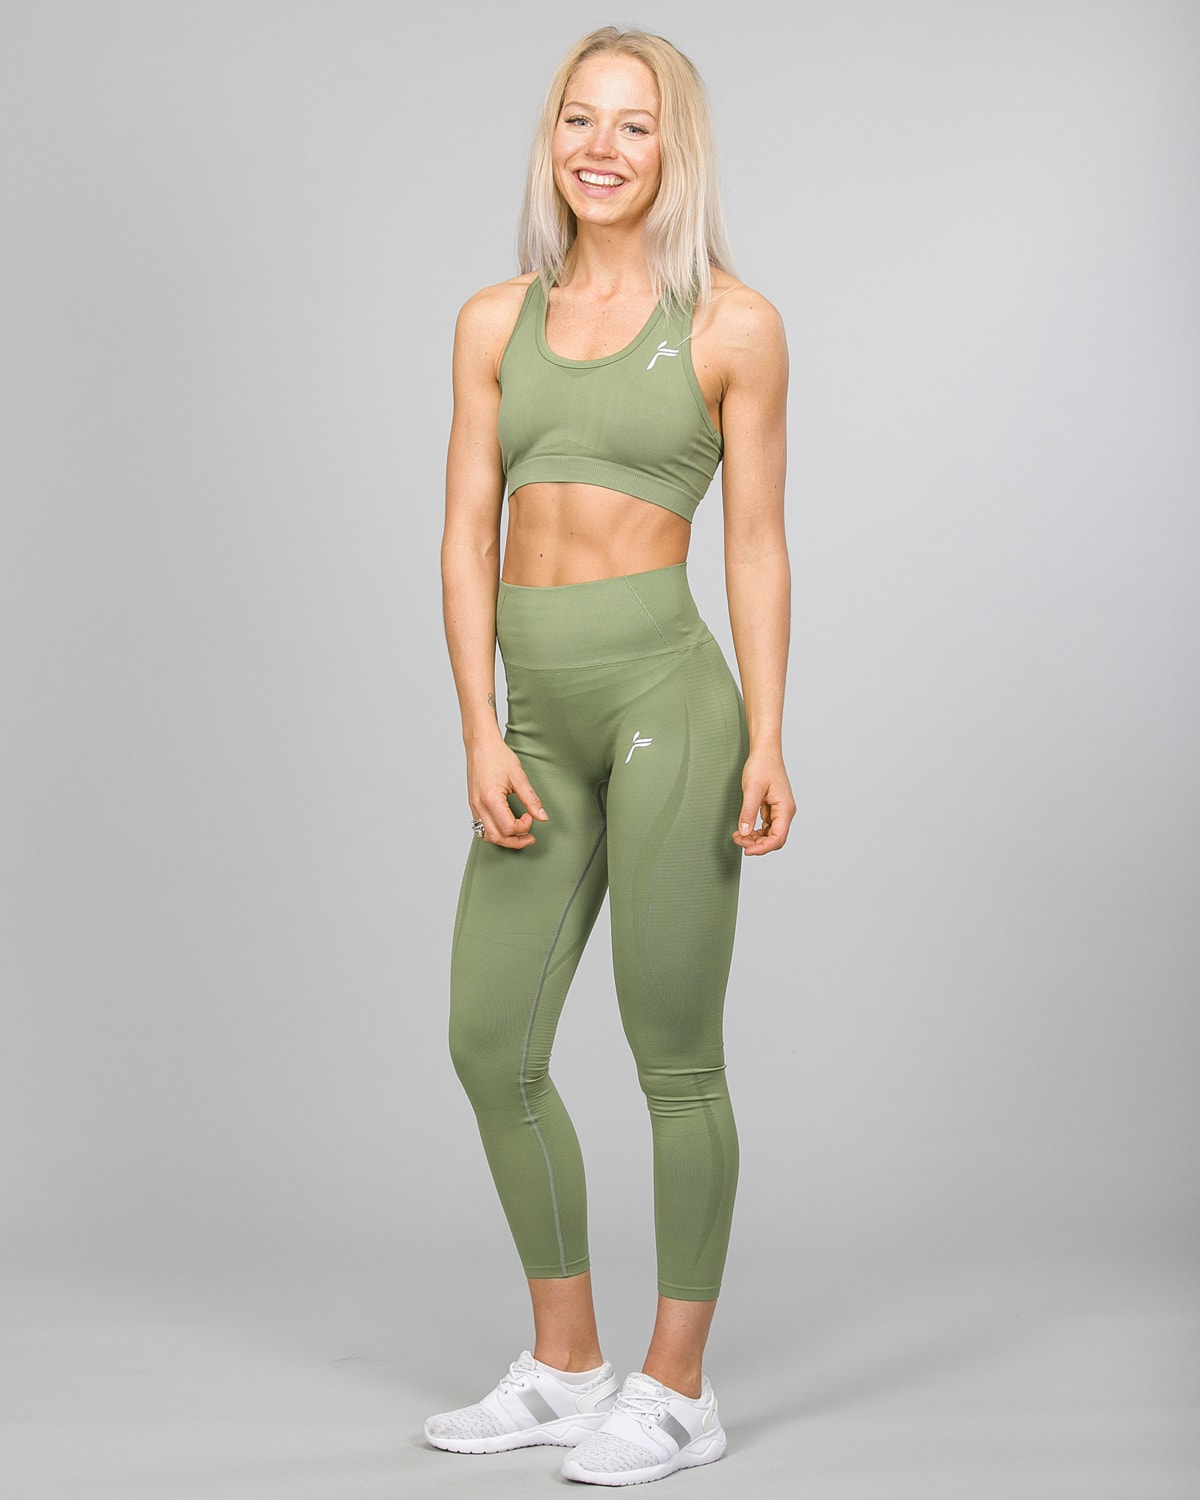 Famme Vortex Legging vhwl-ag and Drop It Sports Bra disb-ag Army Green c